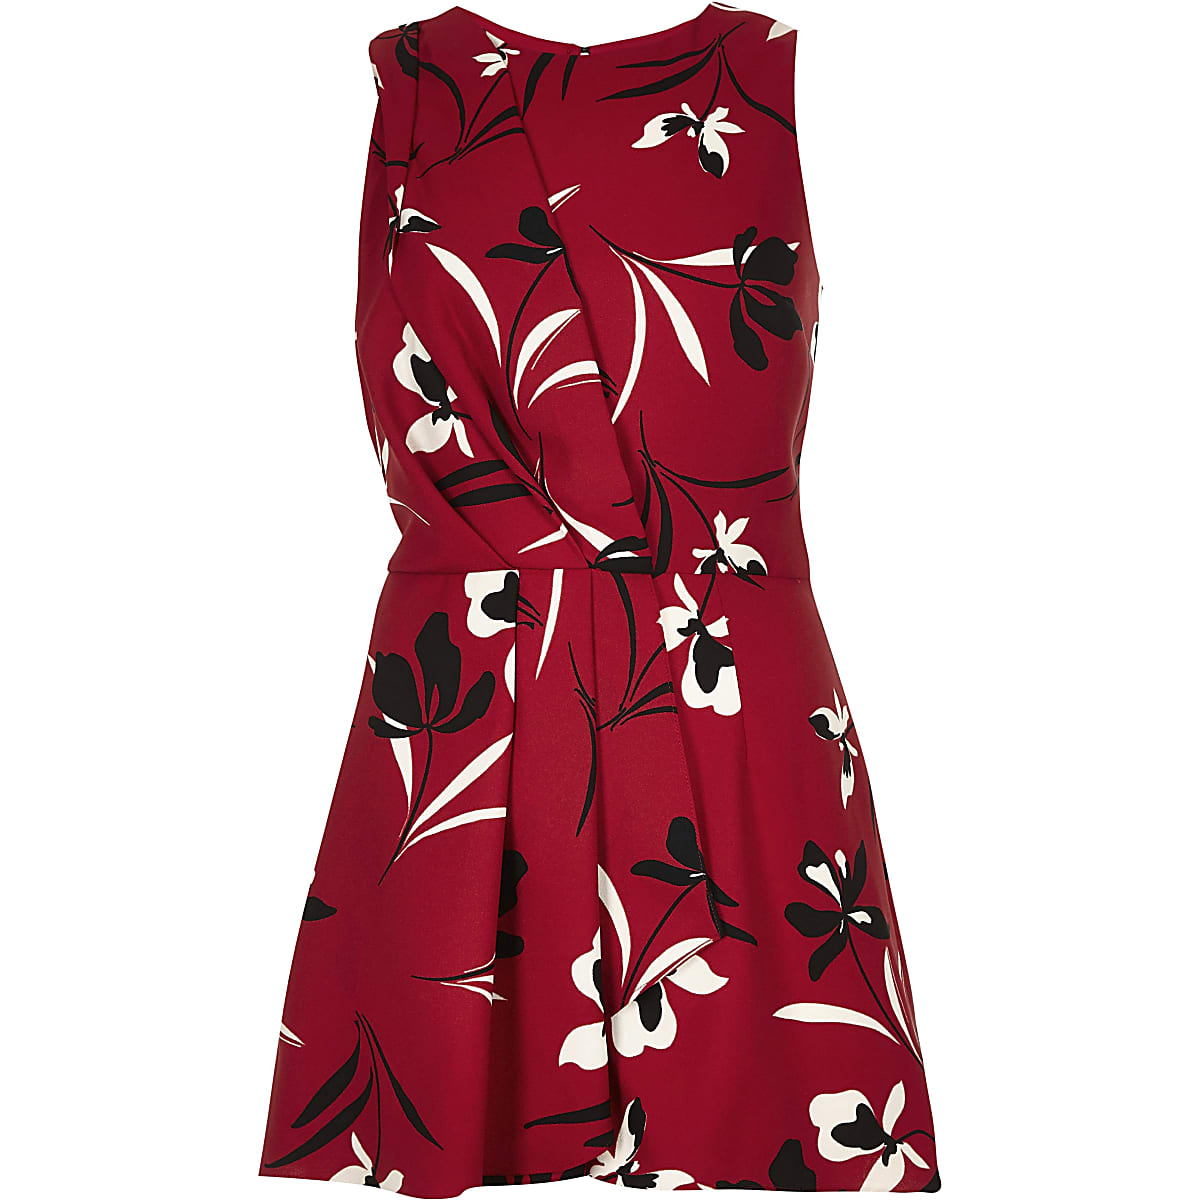 feb3e94d00 Red floral print wrap front playsuit - Playsuits - Playsuits ...